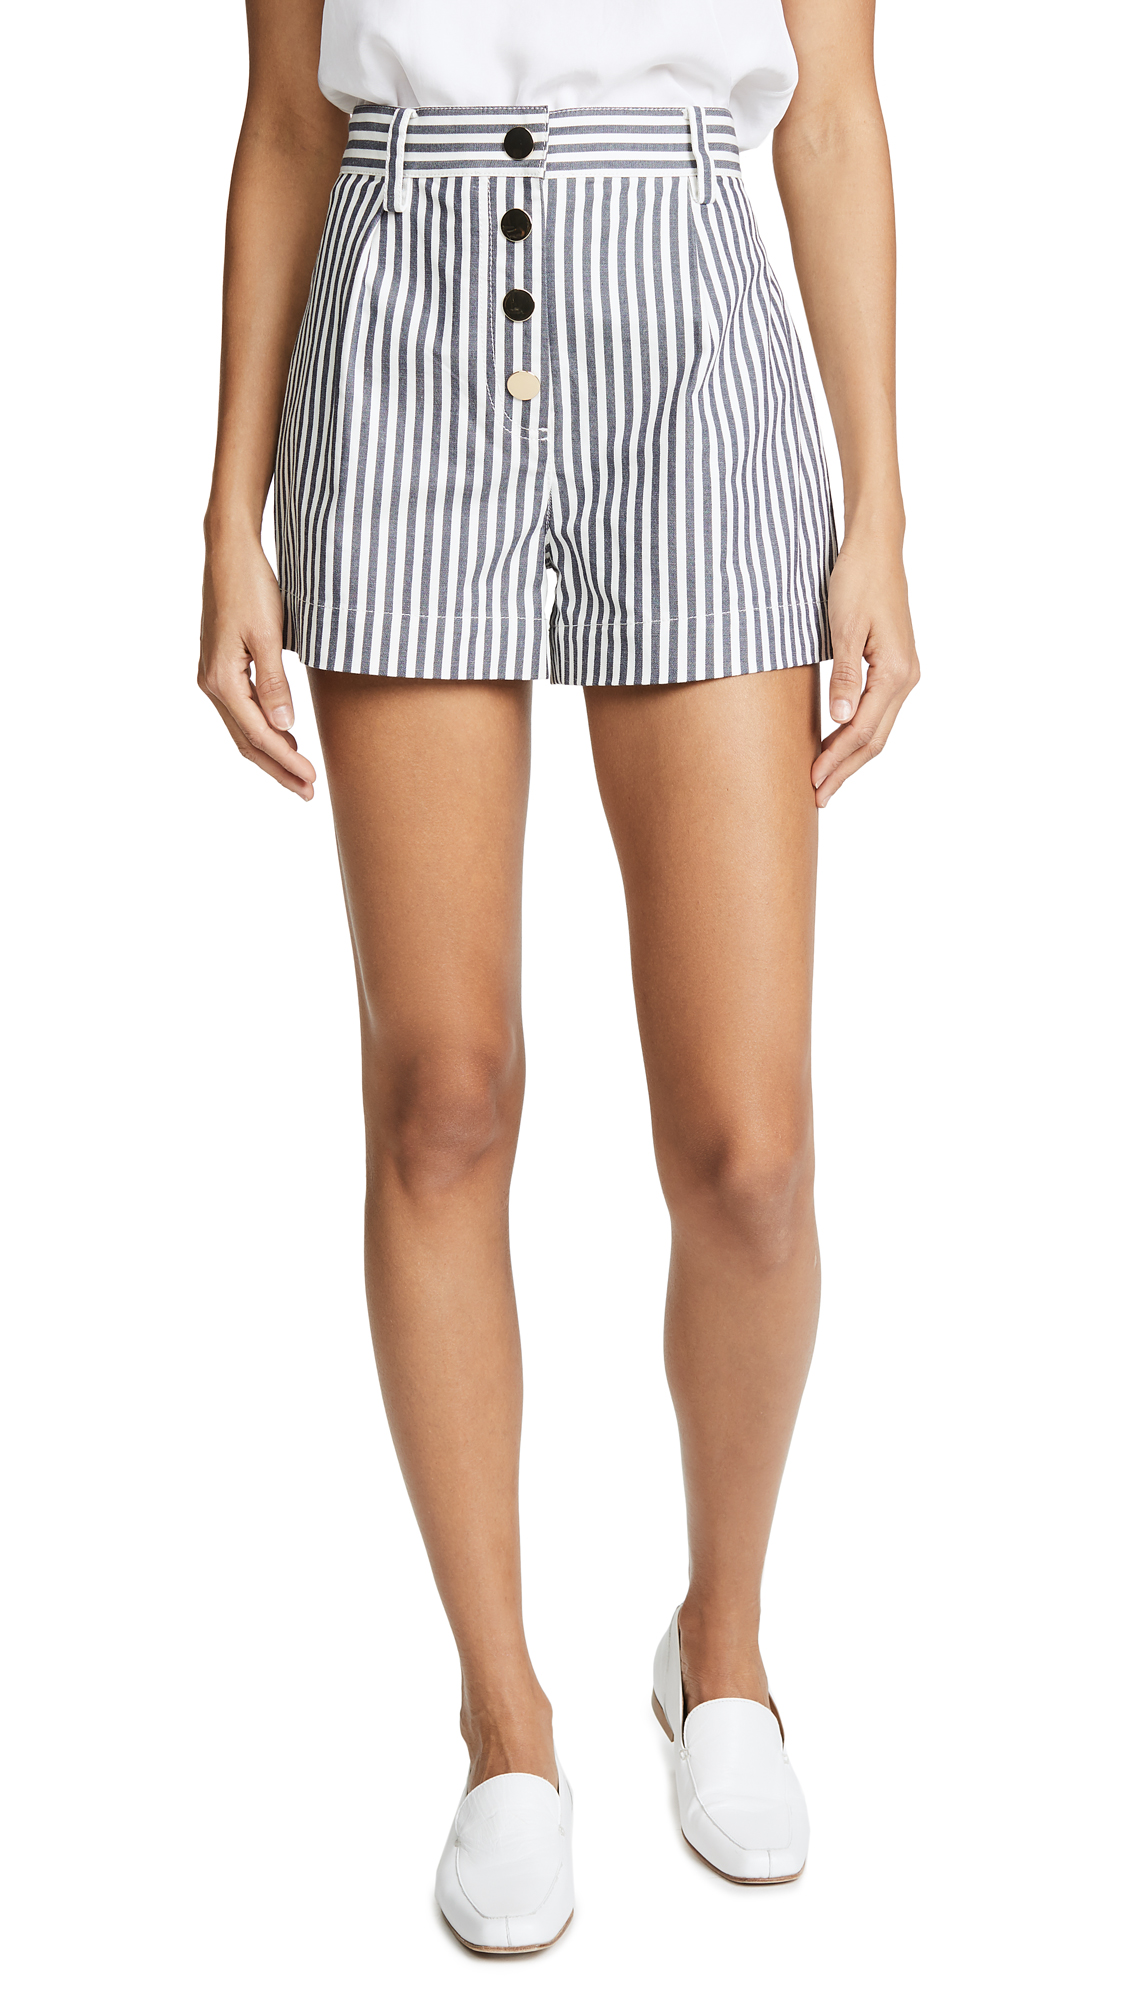 Derek Lam 10 Crosby Belted A Line Shorts In White/Blue